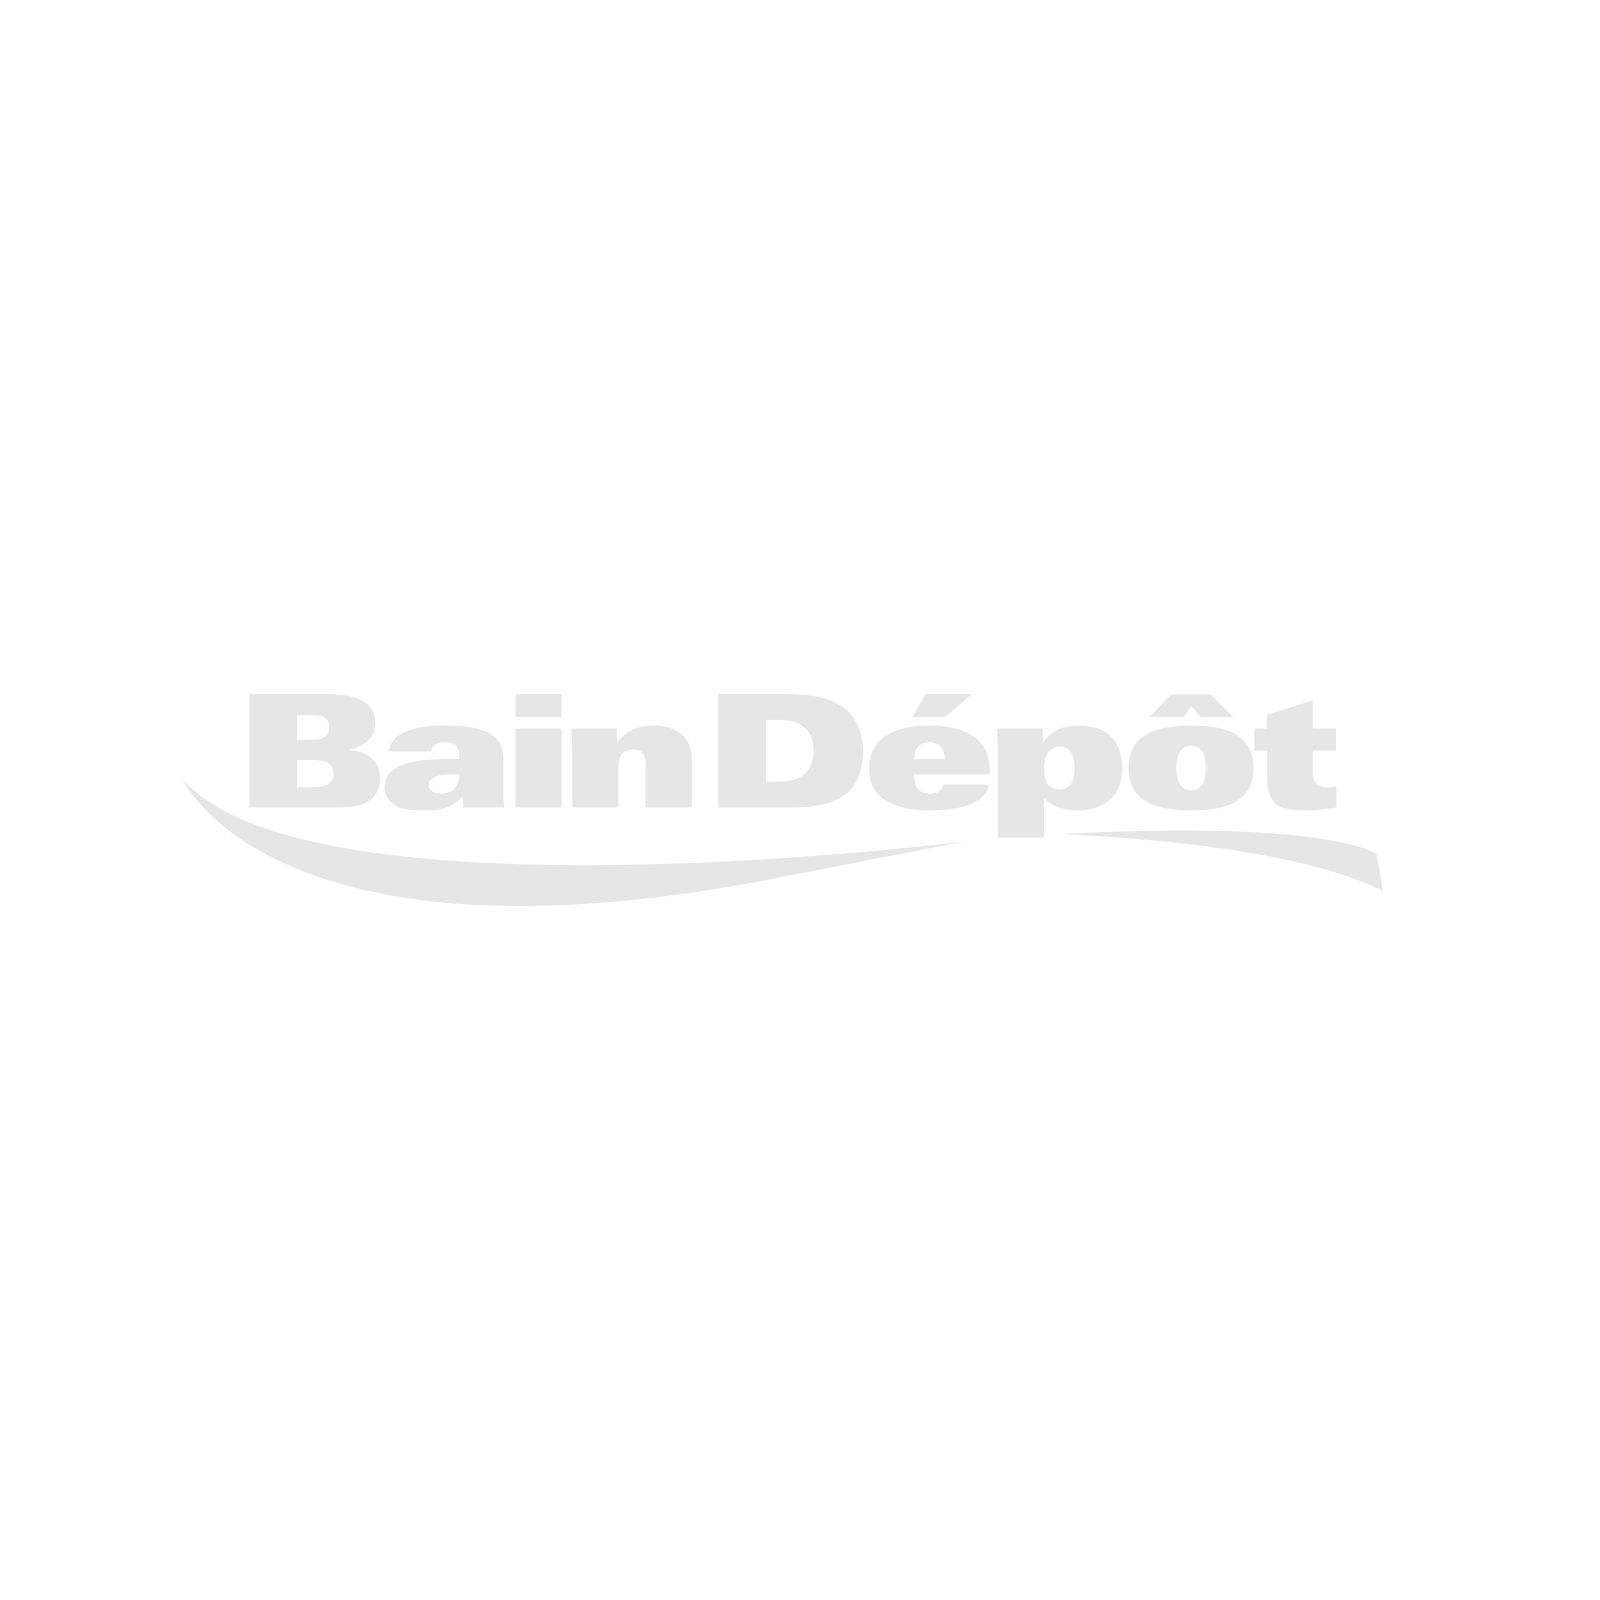 "30"" x 15"" x 13"" Horizontal glass door wall kitchen cabinet"